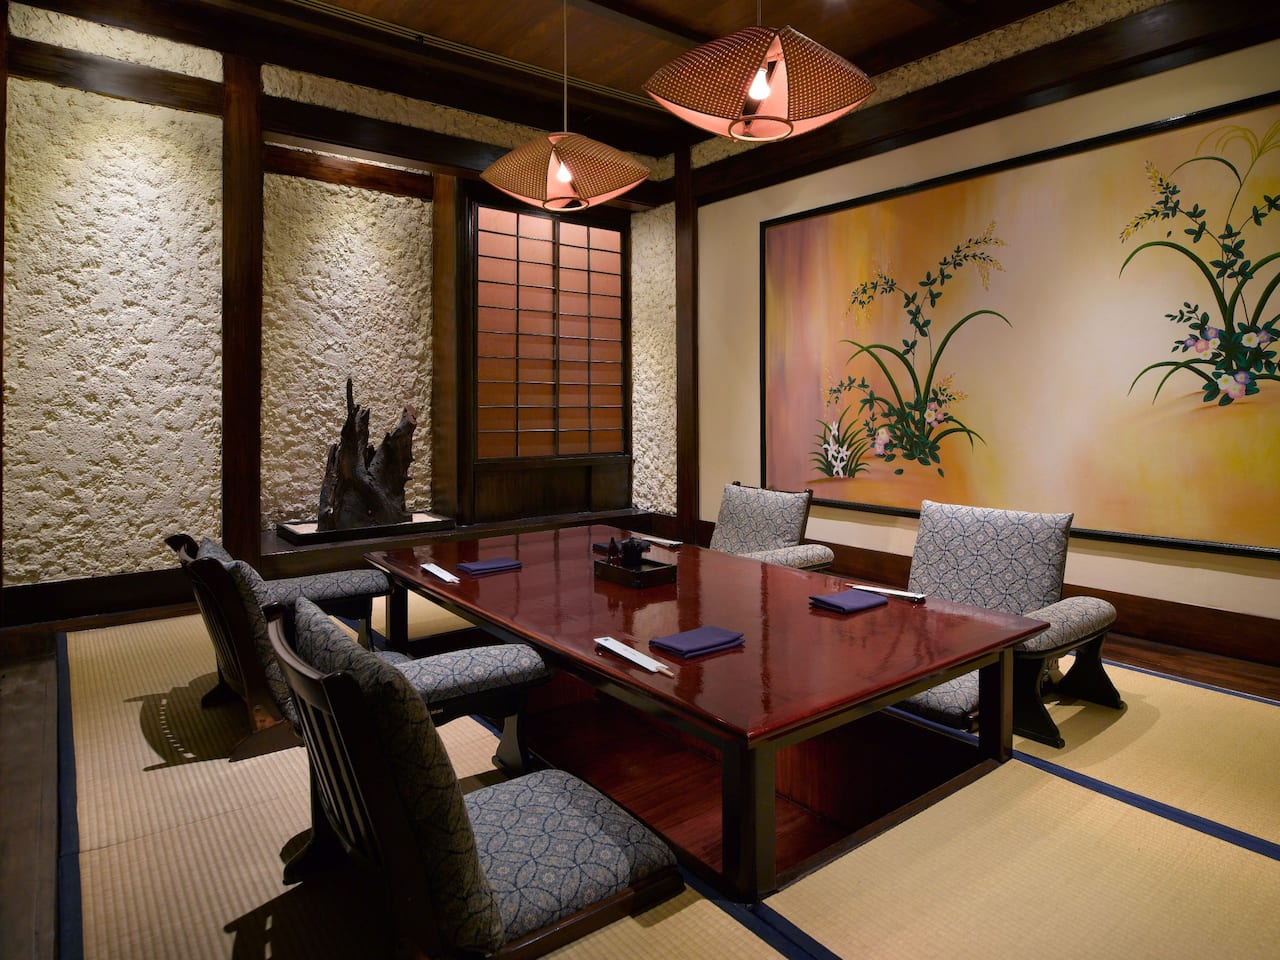 Tatami Room Sumire Japanese Restaurant The Grand Hyatt, Jakarta